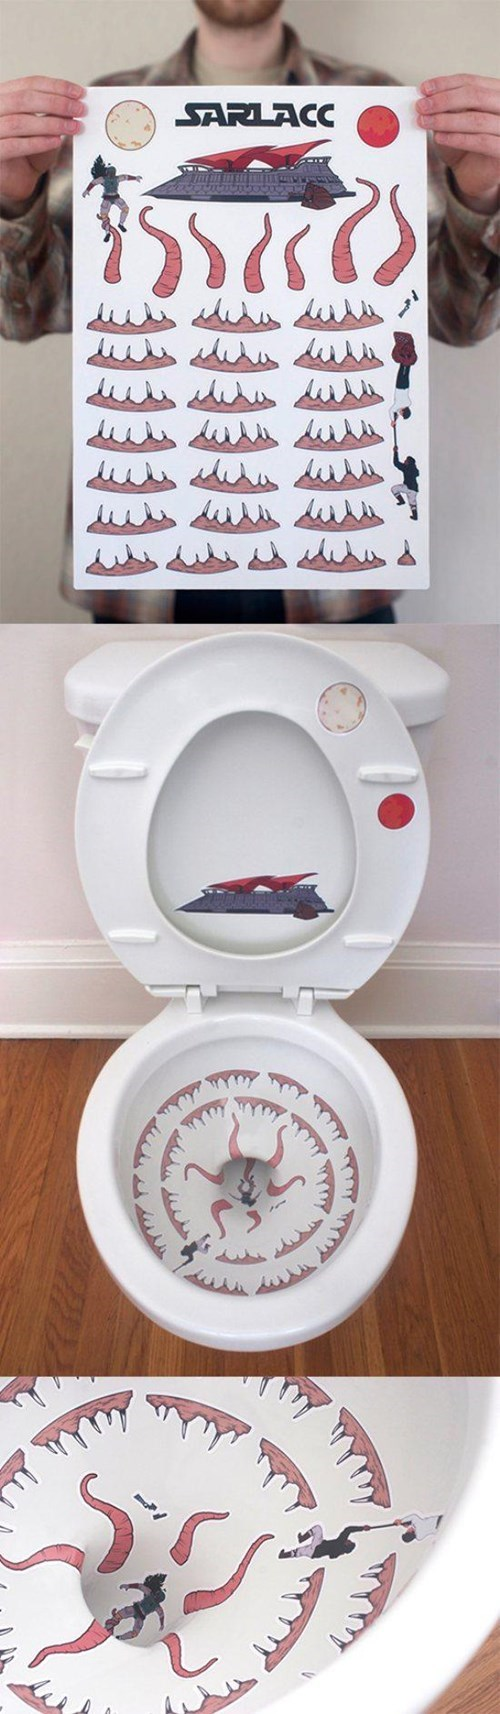 star wars starlacc toilets - 8162619136